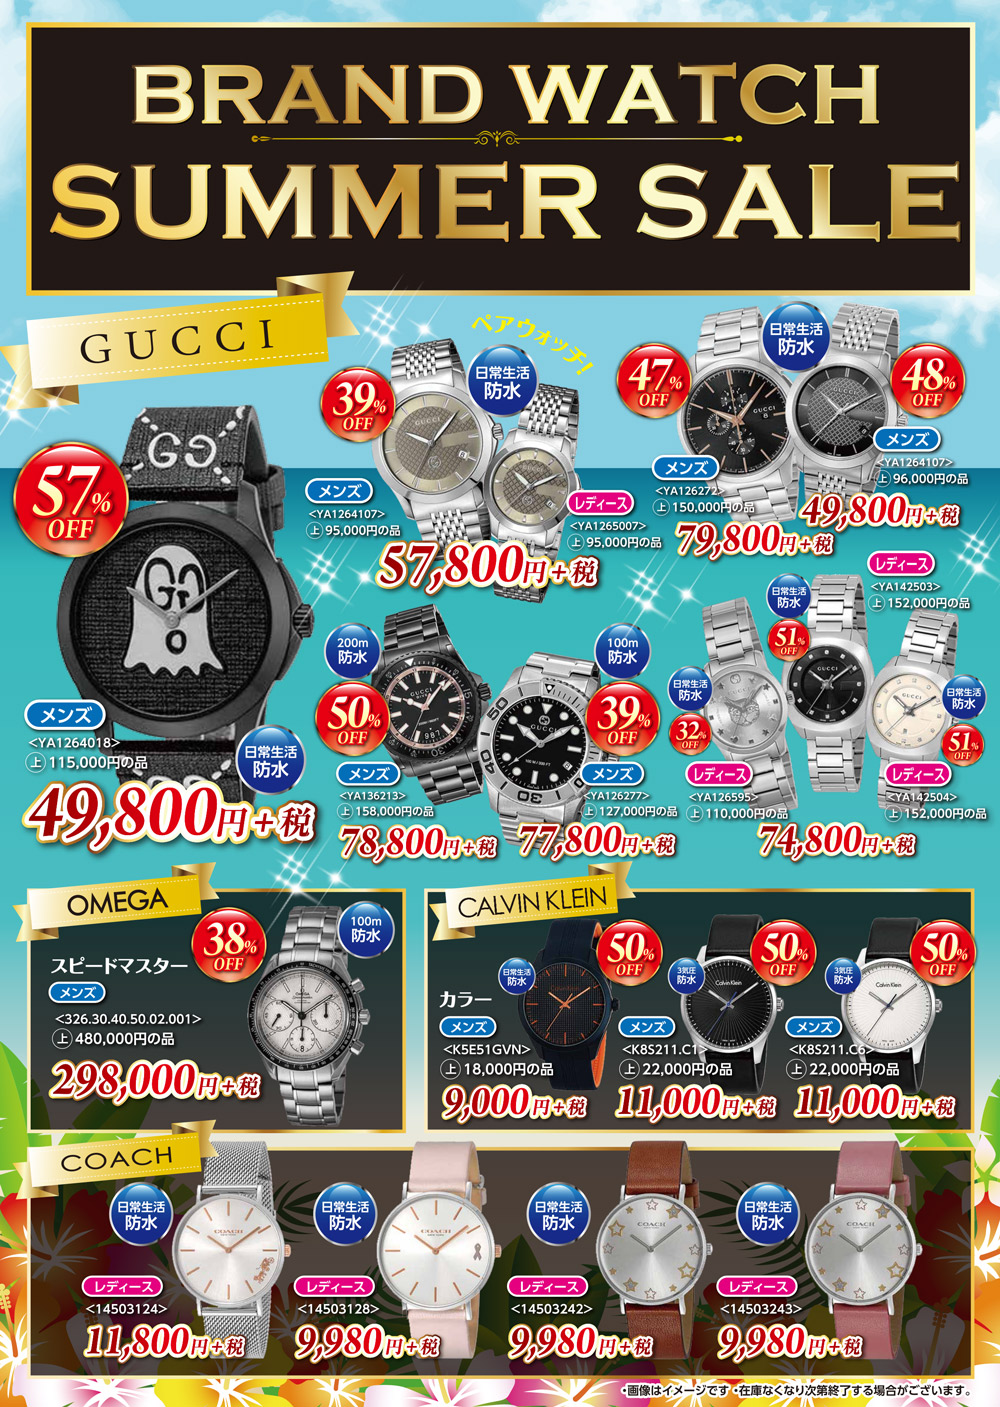 BRAND WATCH SUMMER SALE